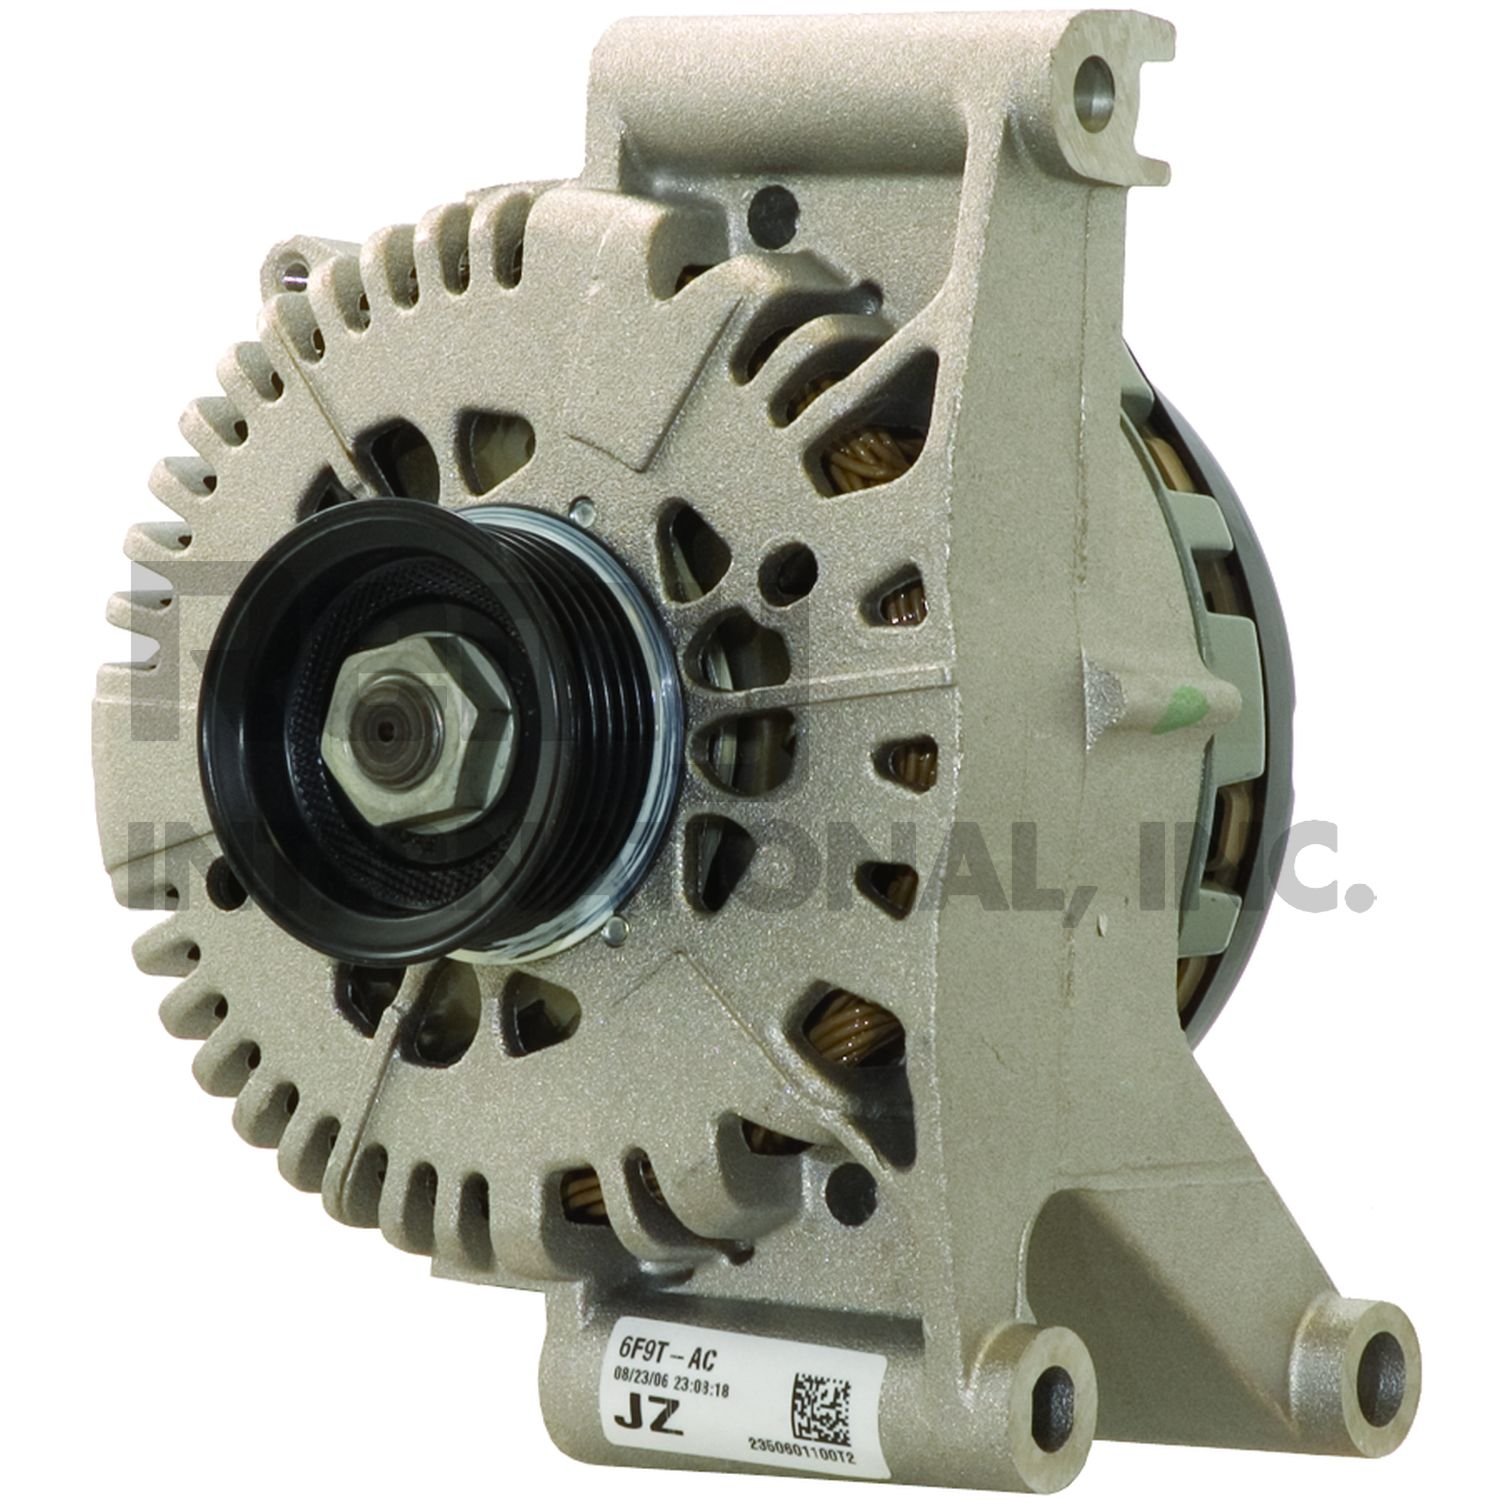 2005 ford five hundred alternator world wide auto remy 23794